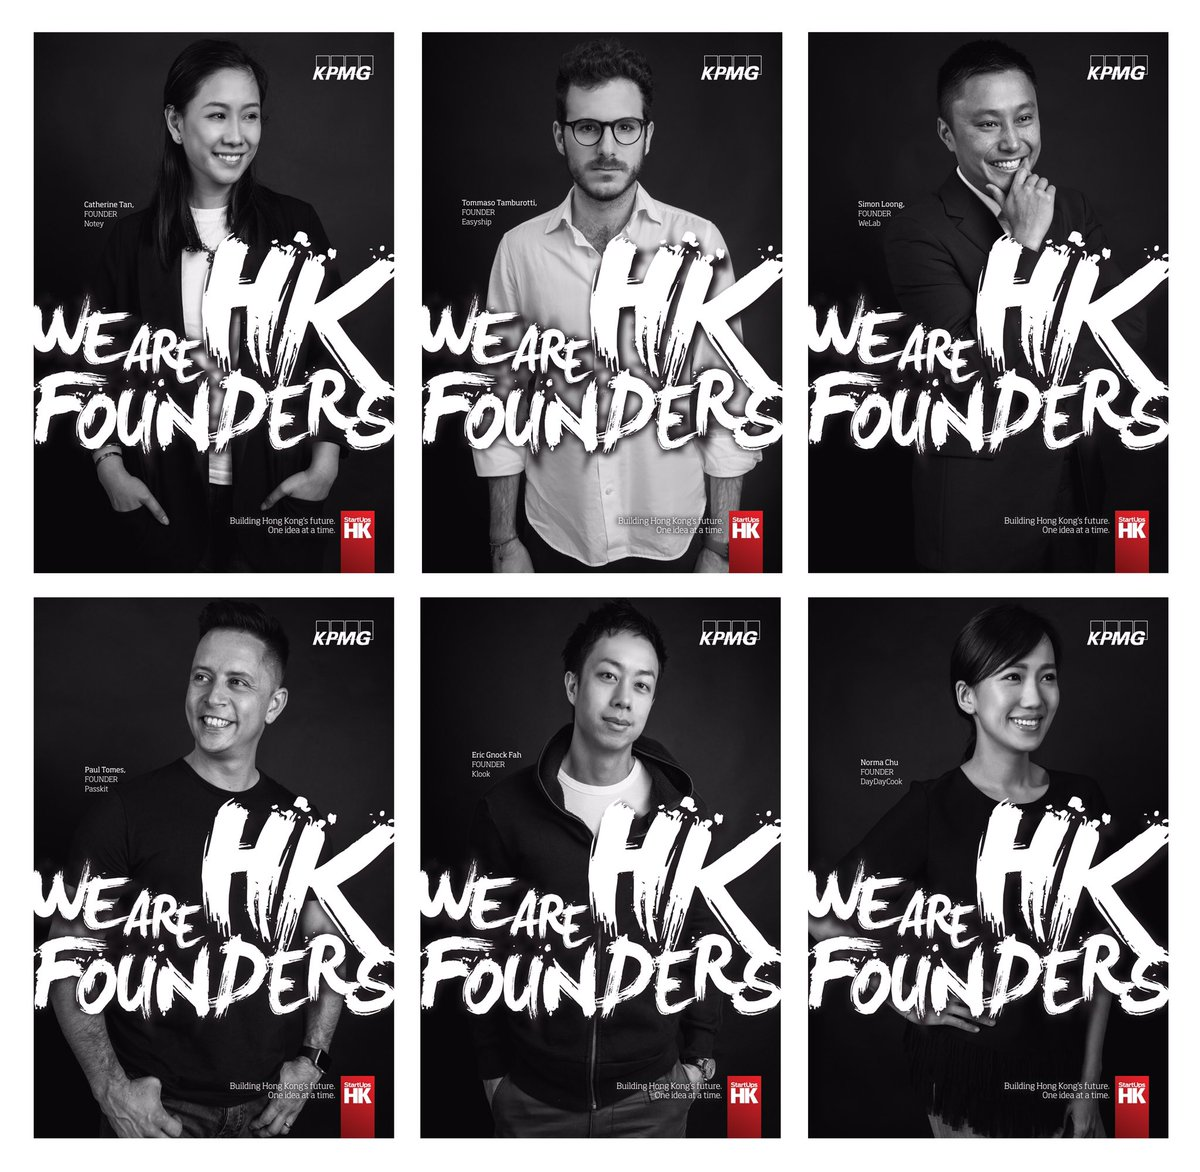 """We Are HK Founders"" campaign debuts at #RISEconf and spotlight on HK ecosystem on June 2: https://t.co/OrbWQvMmjE https://t.co/fGfLqKGYY5"